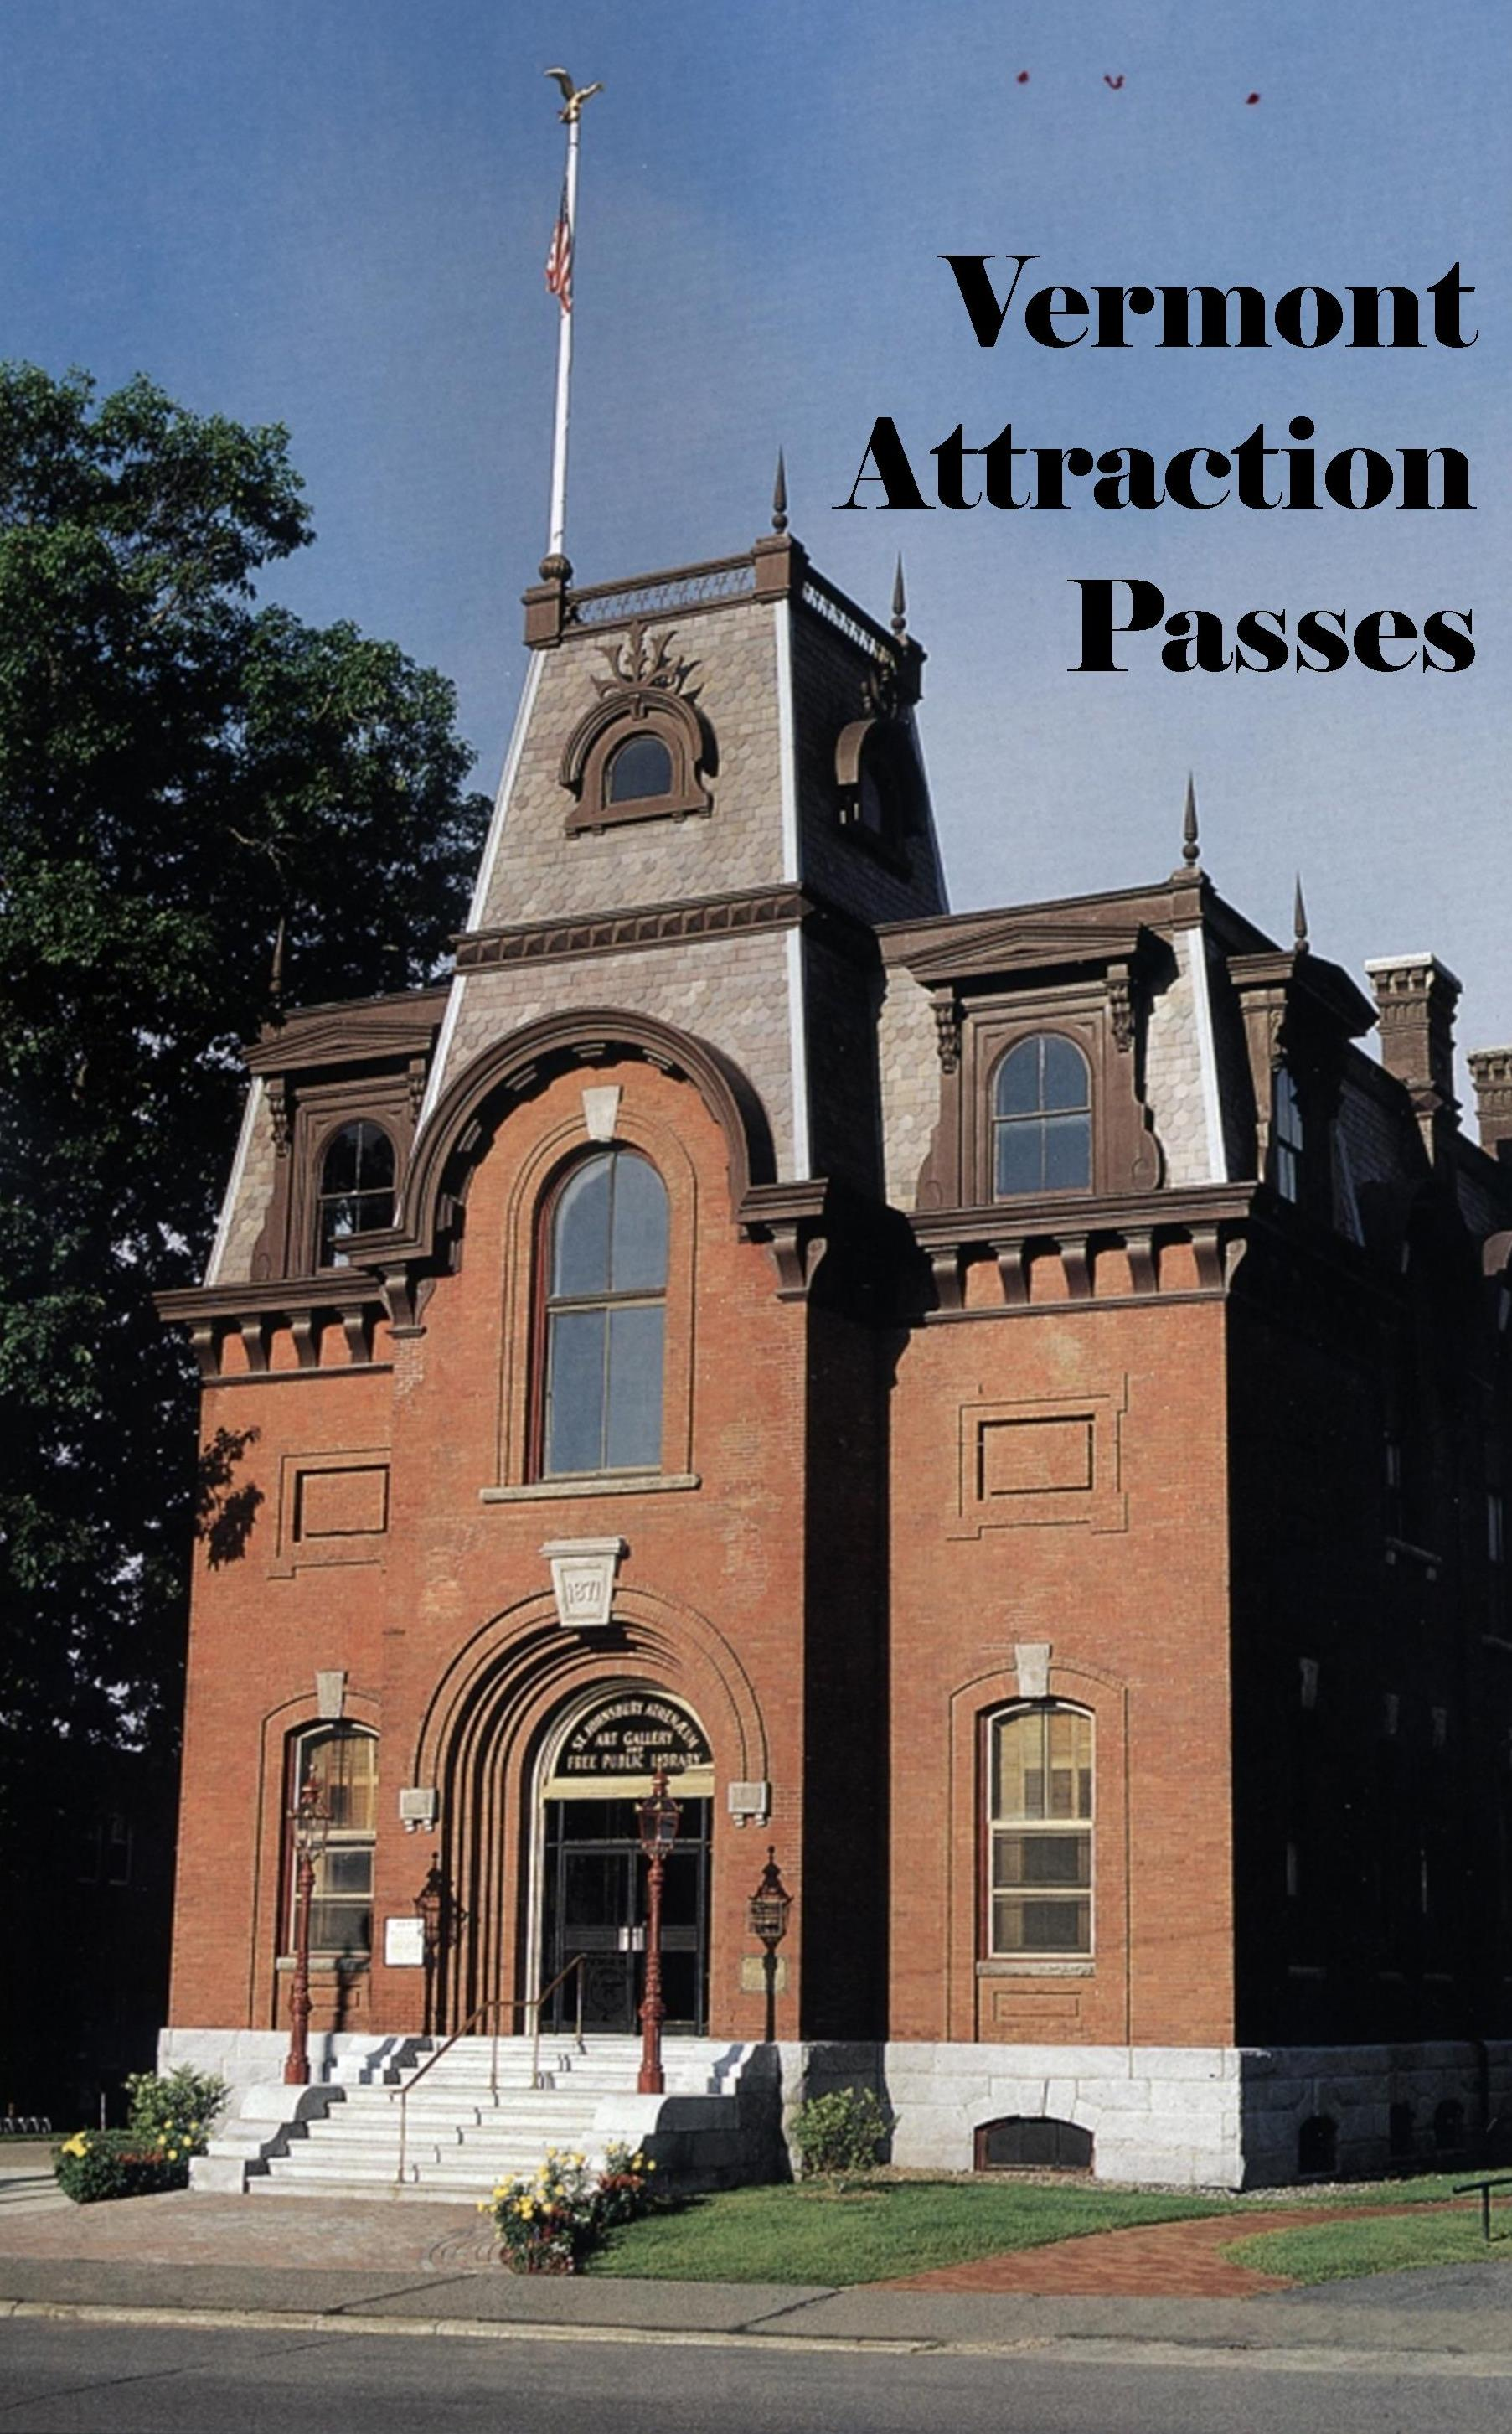 Patrons of the St. Johnsbury Athenaeum can check out three-day attraction passes at the main floor circulation desk. These passes are on a first come, first served availability. These passes are not eligible to be placed on hold.    Includes passes to Vermont State Parks; Vermont Historic Sites; ECHO Leahy Center for Lake Champlain; and Vermont History Museum. Read more about these places    HERE.